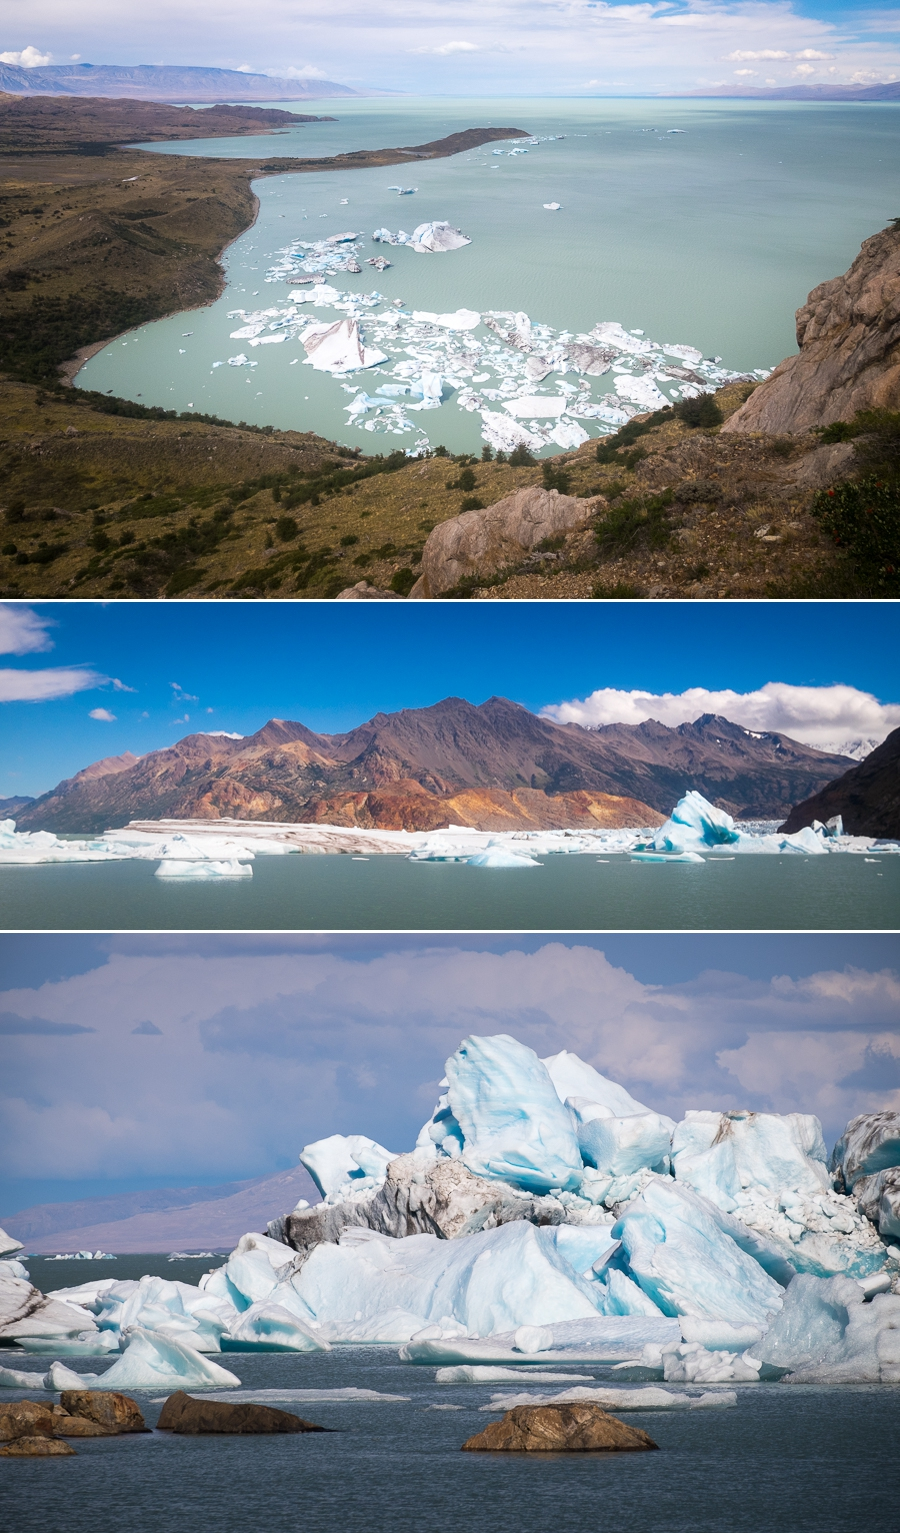 Bahía de los Témpanos and its icebergs - South Patagonia Icefield Expedition - Argentina